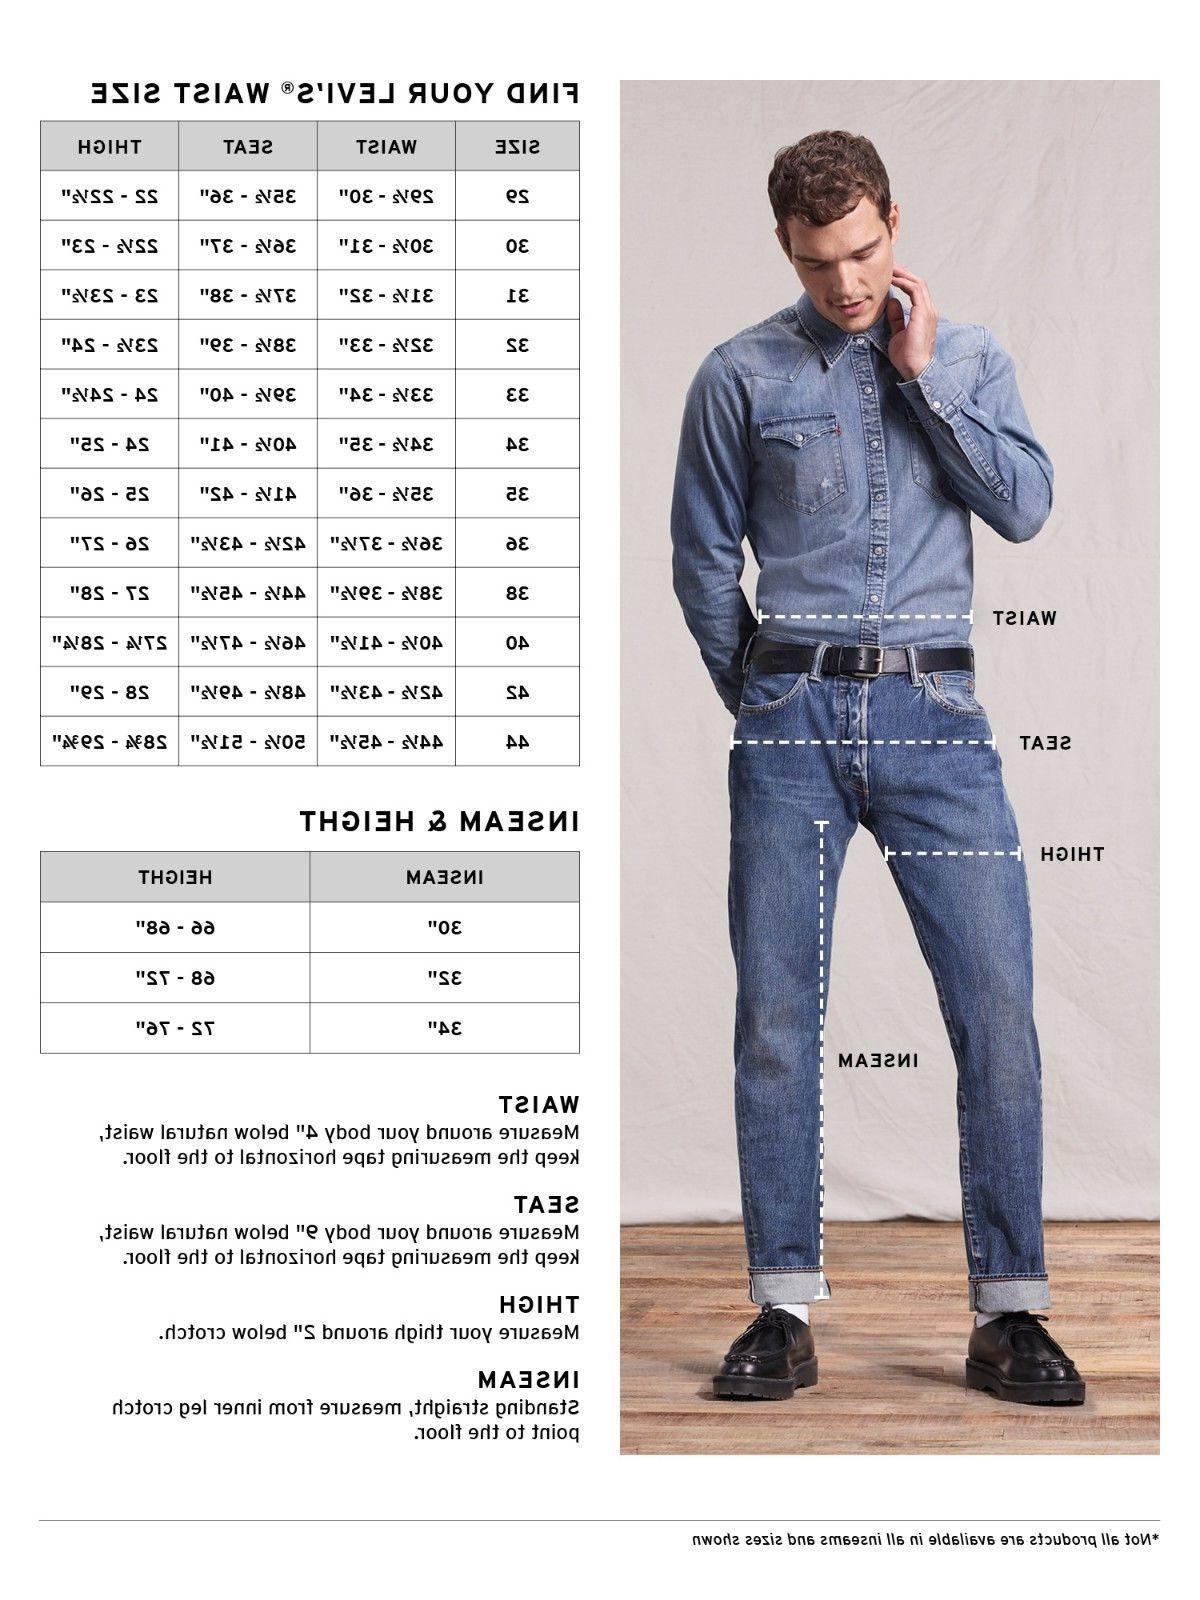 Men's Fit Sizes